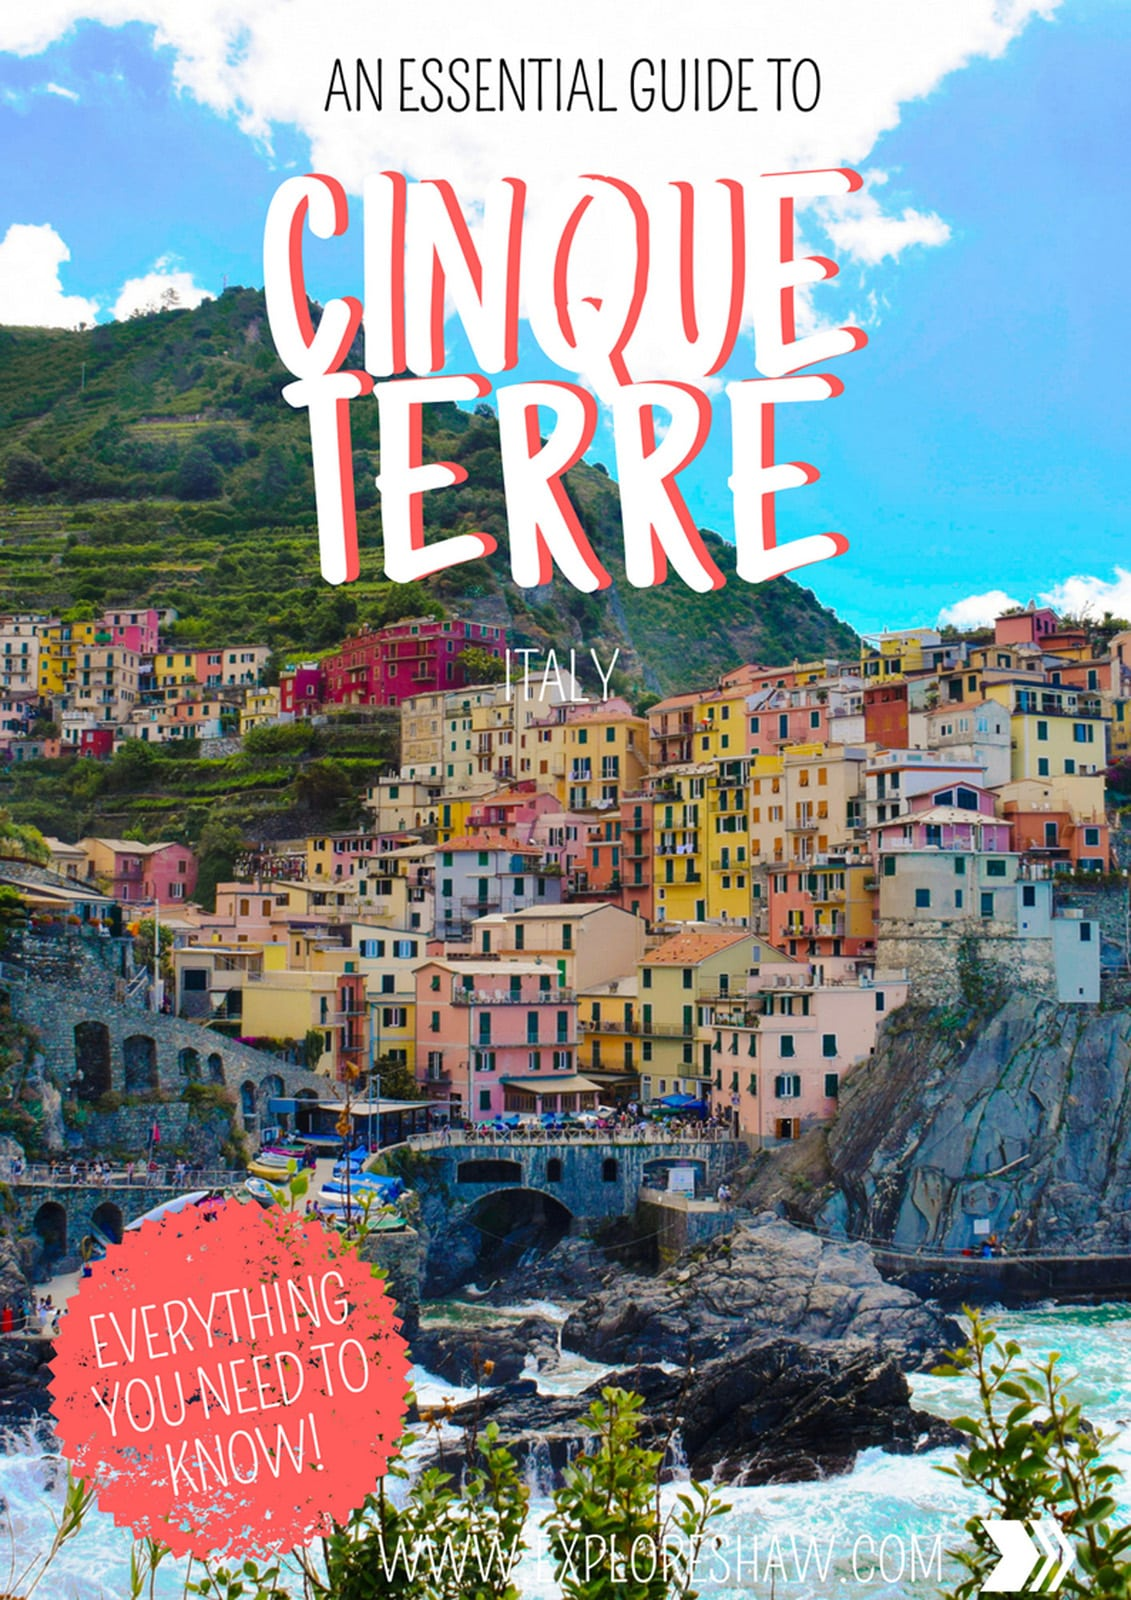 AN ESSENTIAL GUIDE TO THE CINQUE TERRE